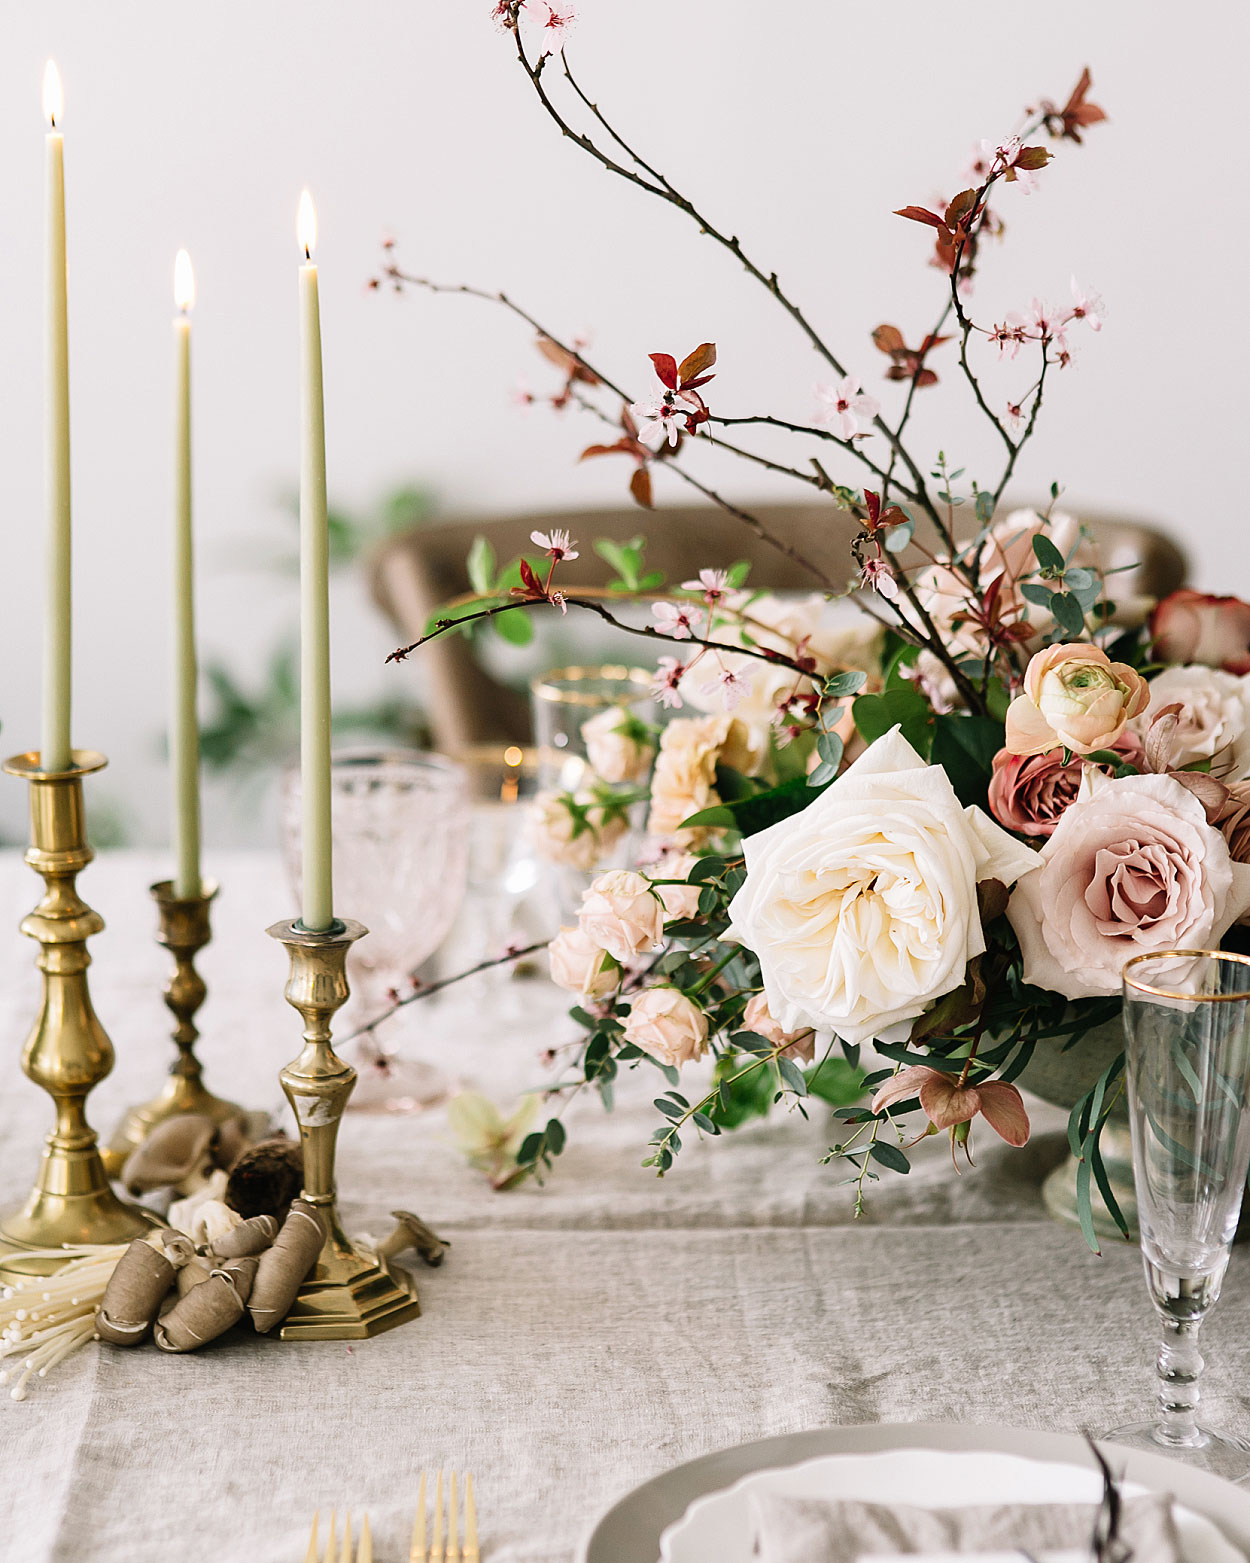 romantic-wedding-flowers-centerpiece-0516.jpg